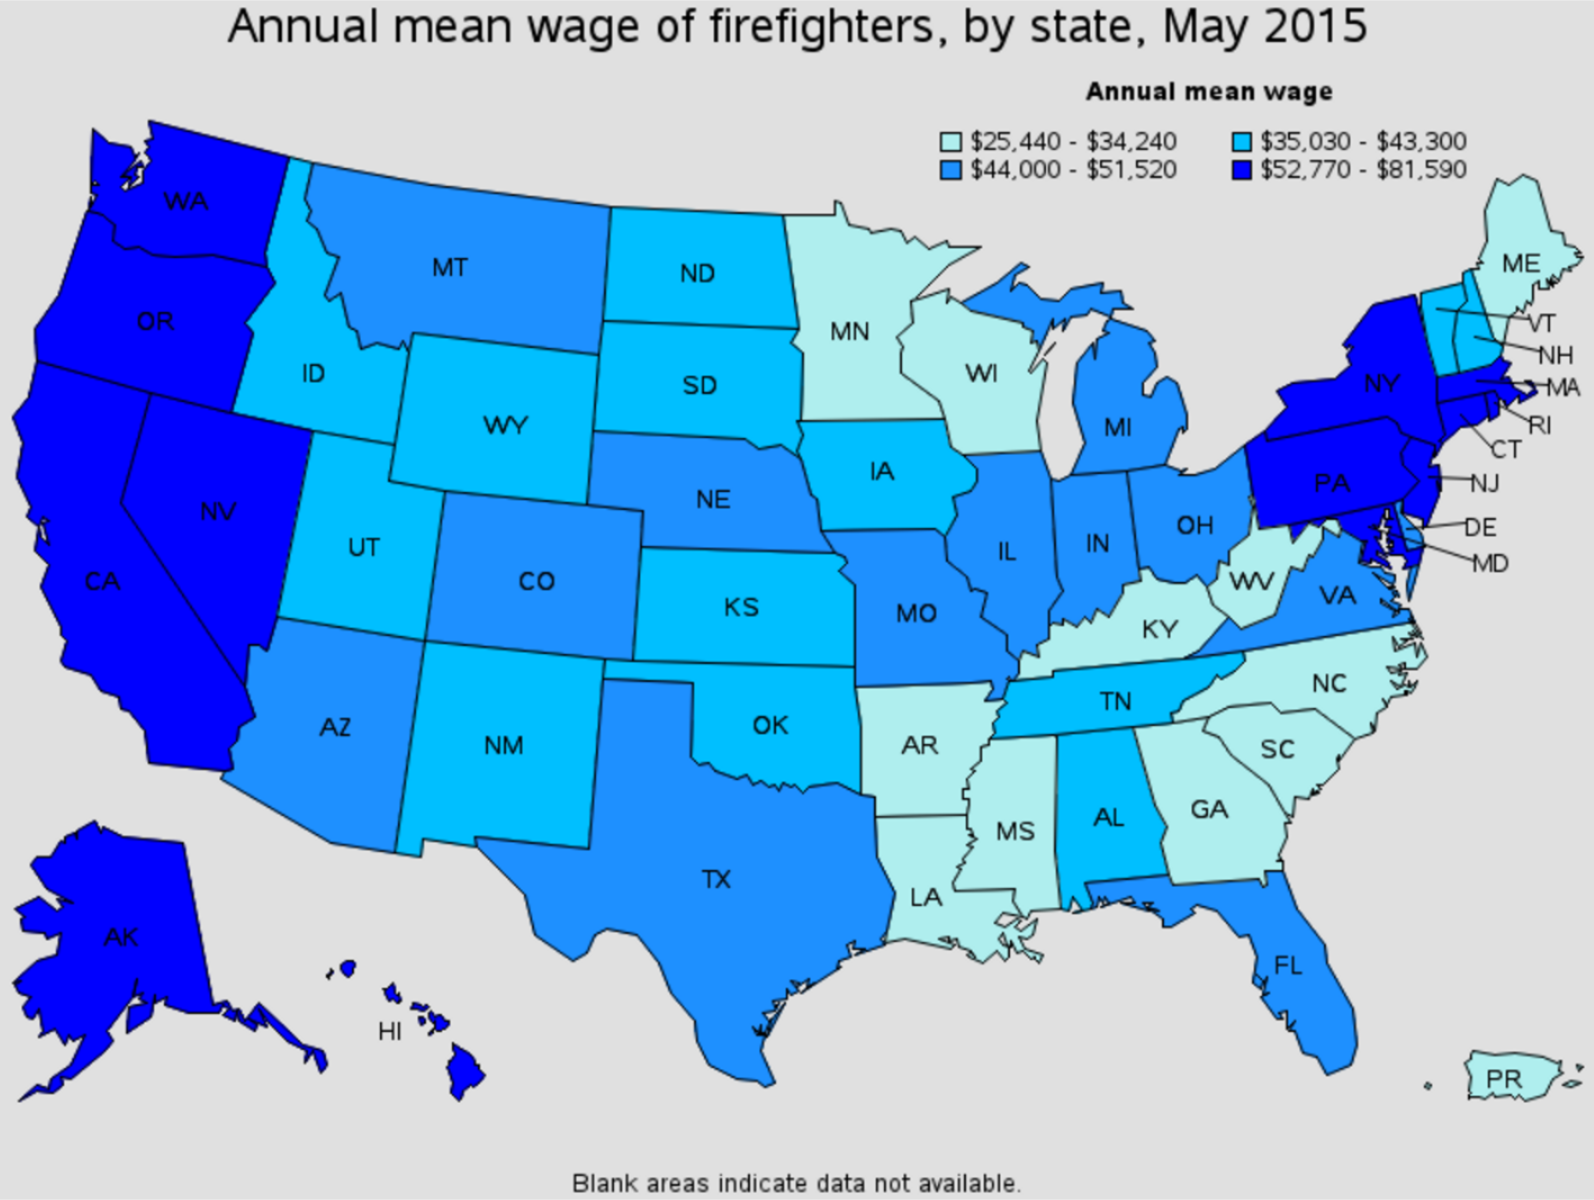 firefighter average salary by state Oxnard California